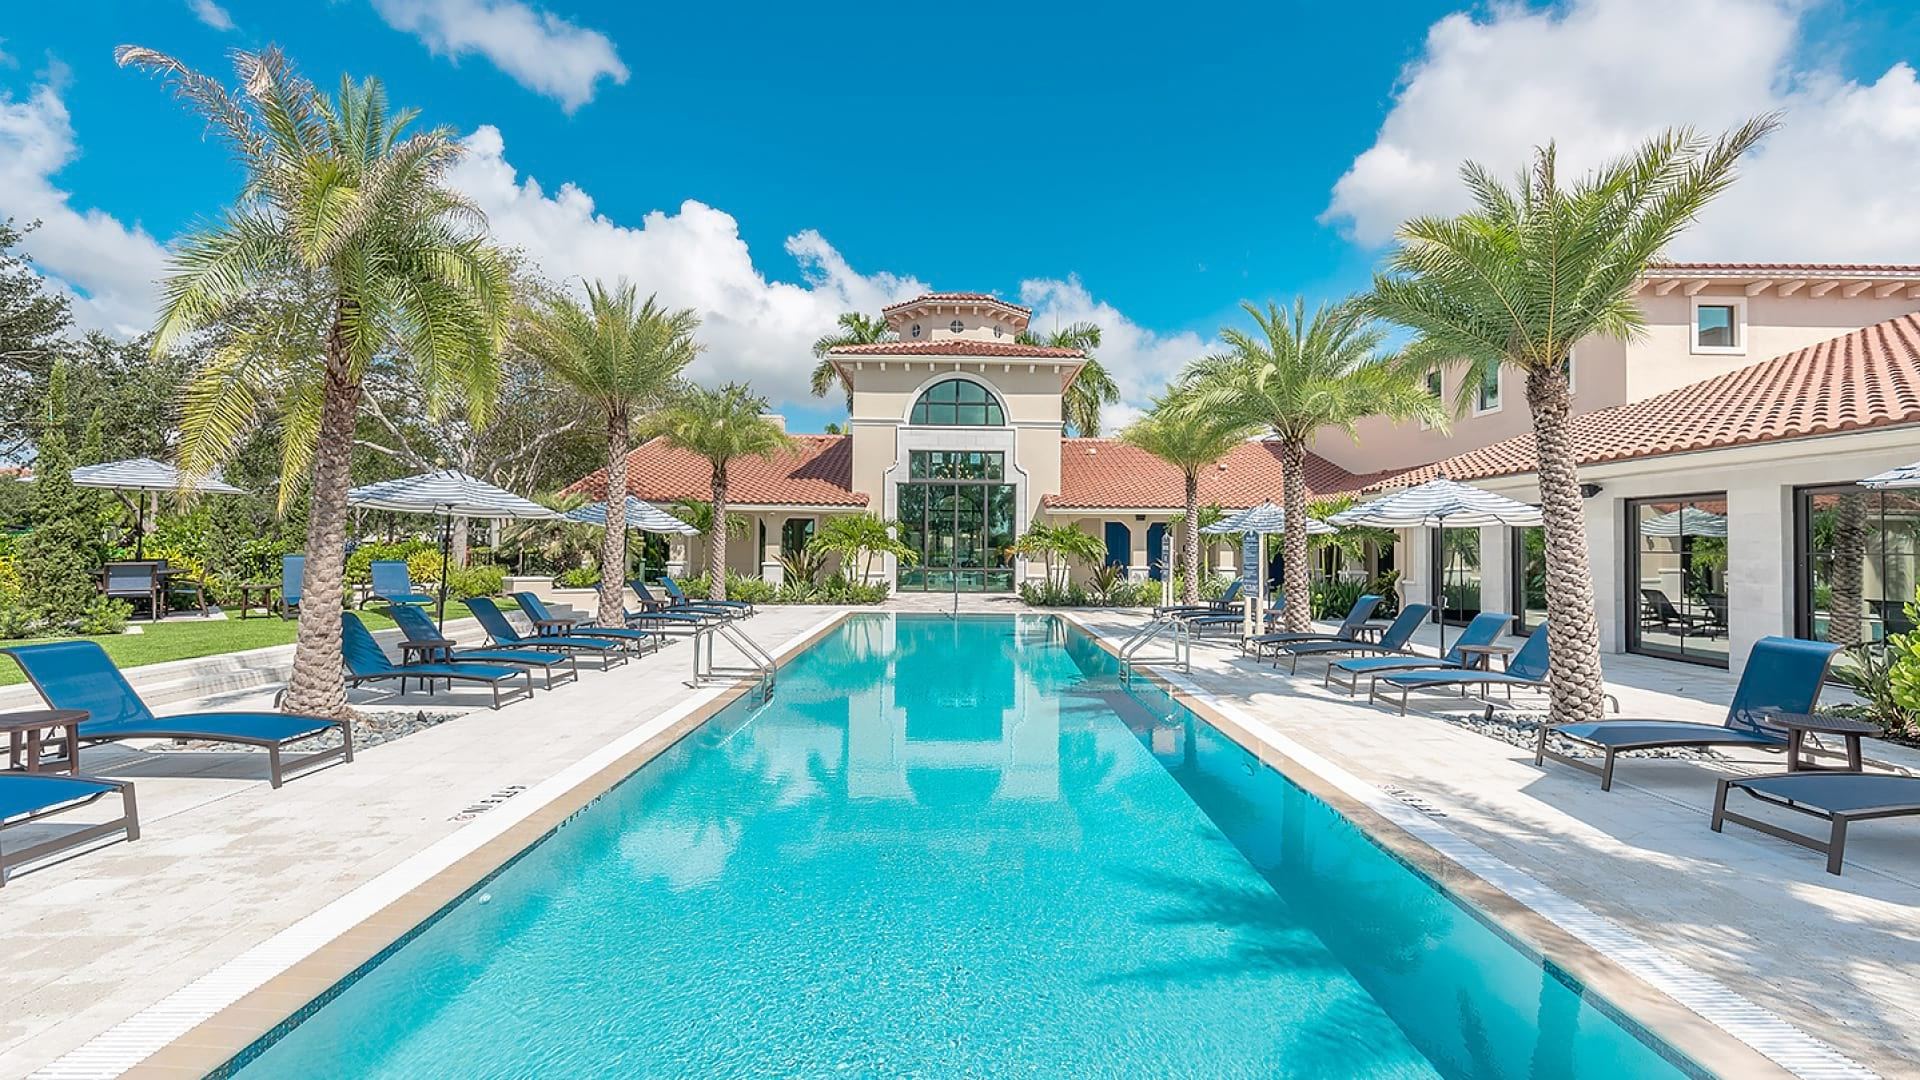 Resort style pool at apartment complexes in West Palm Beach